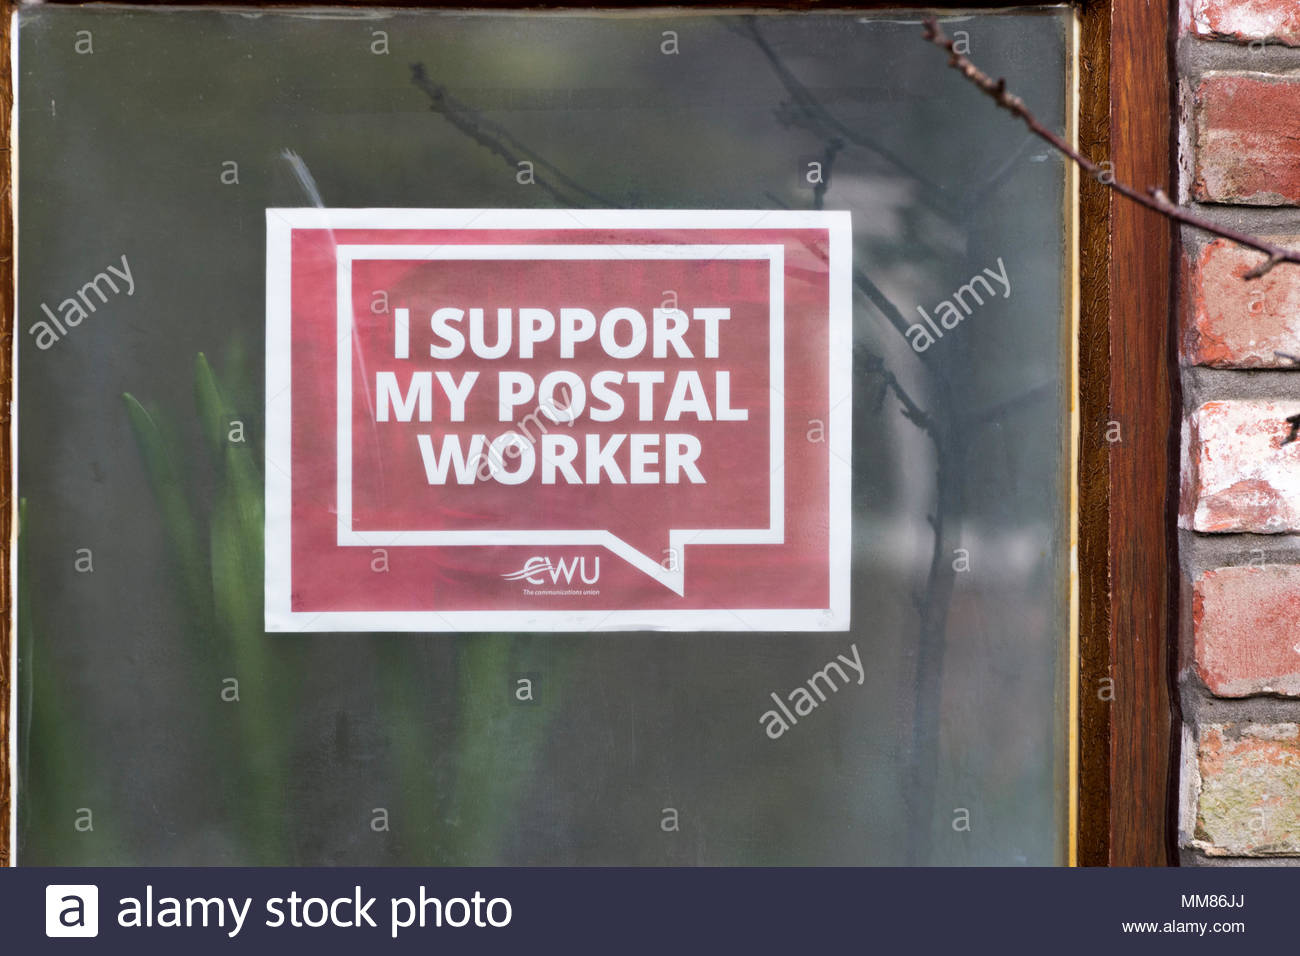 I Support My  Postal Worked - a CWU poster stuck inside a window, Blandford Forum, Dorset, England - Stock Image